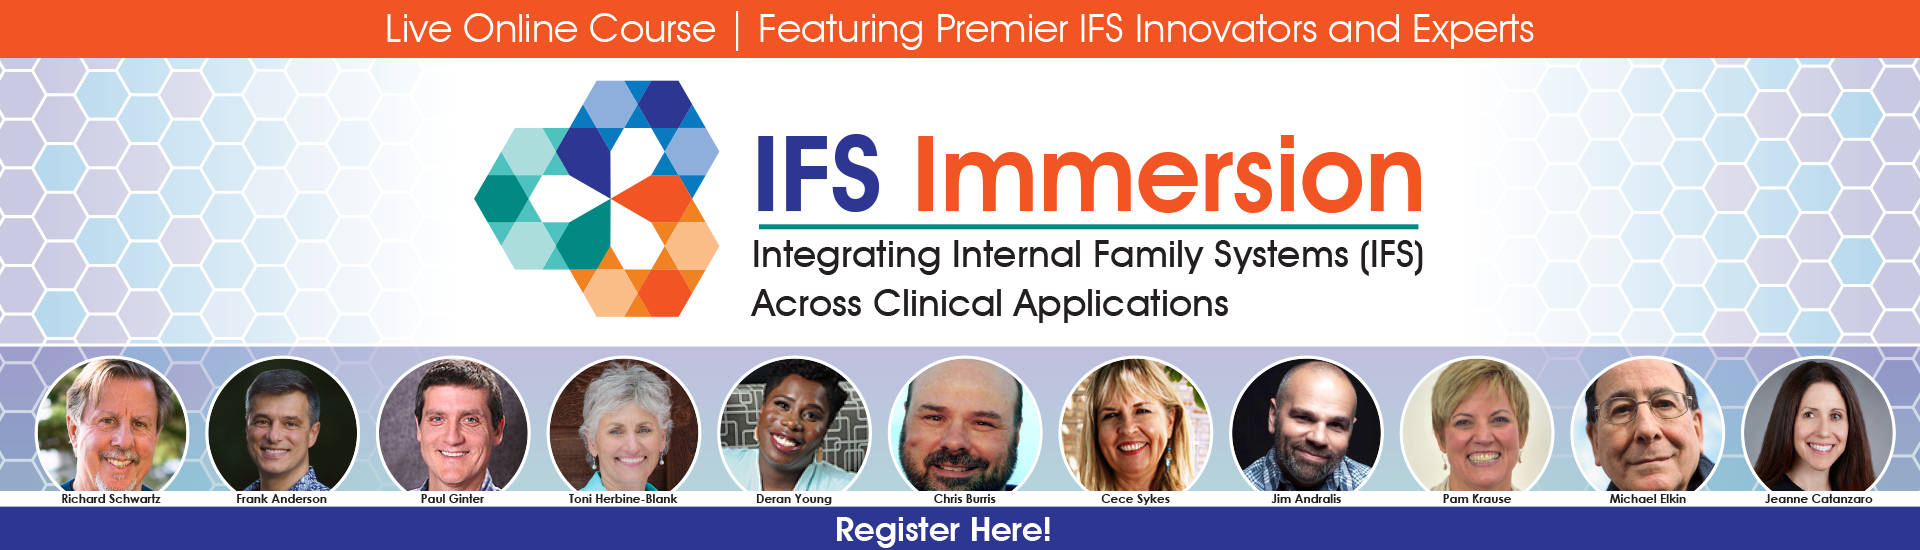 IFS Immersion Live Online Course